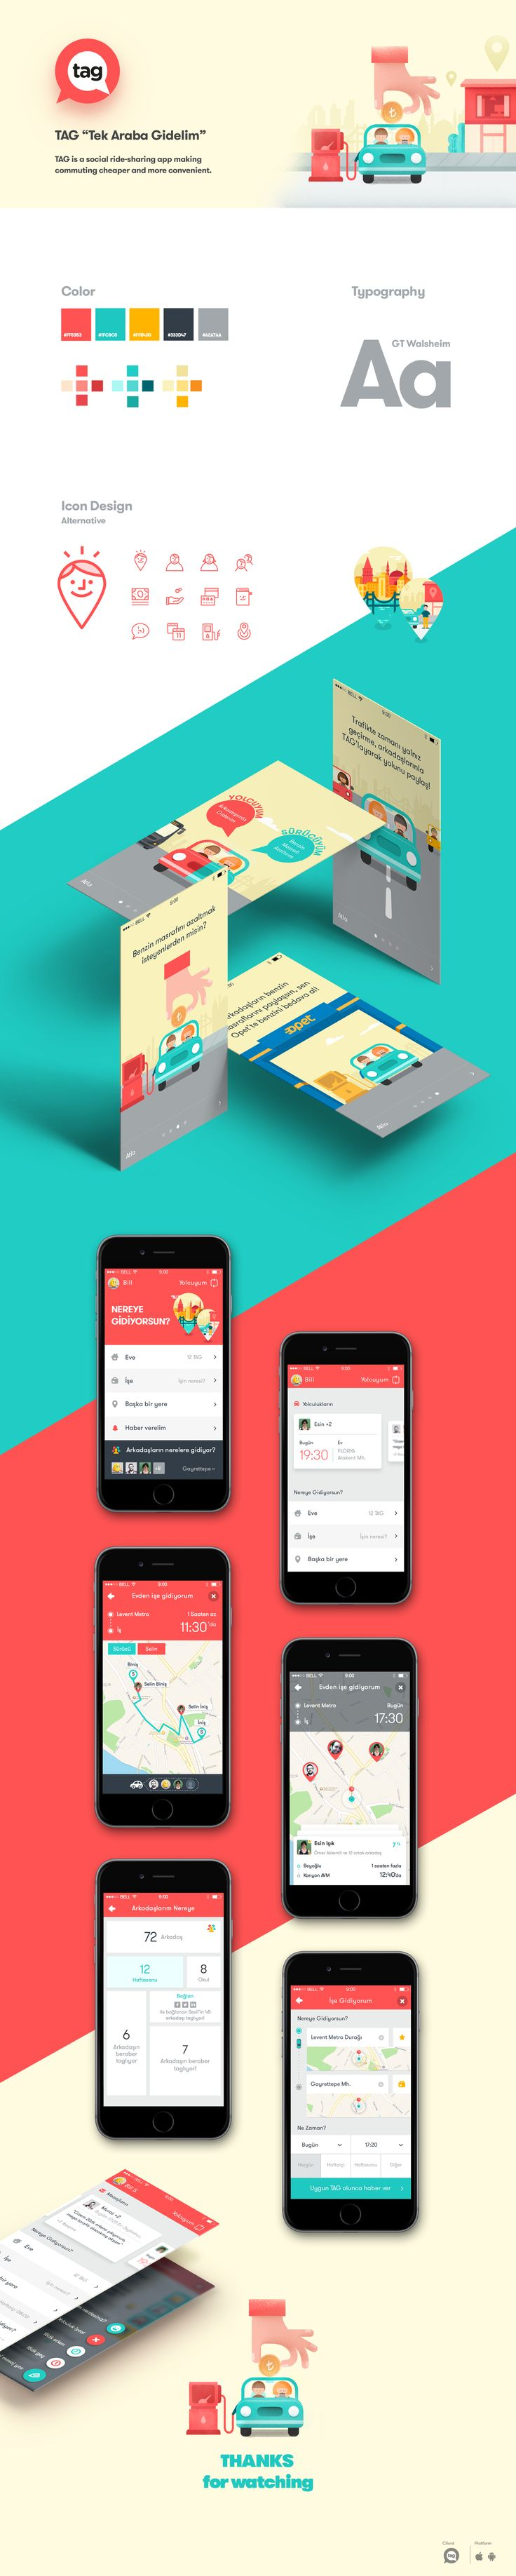 """TAG"" Mobile App Design on Behance"